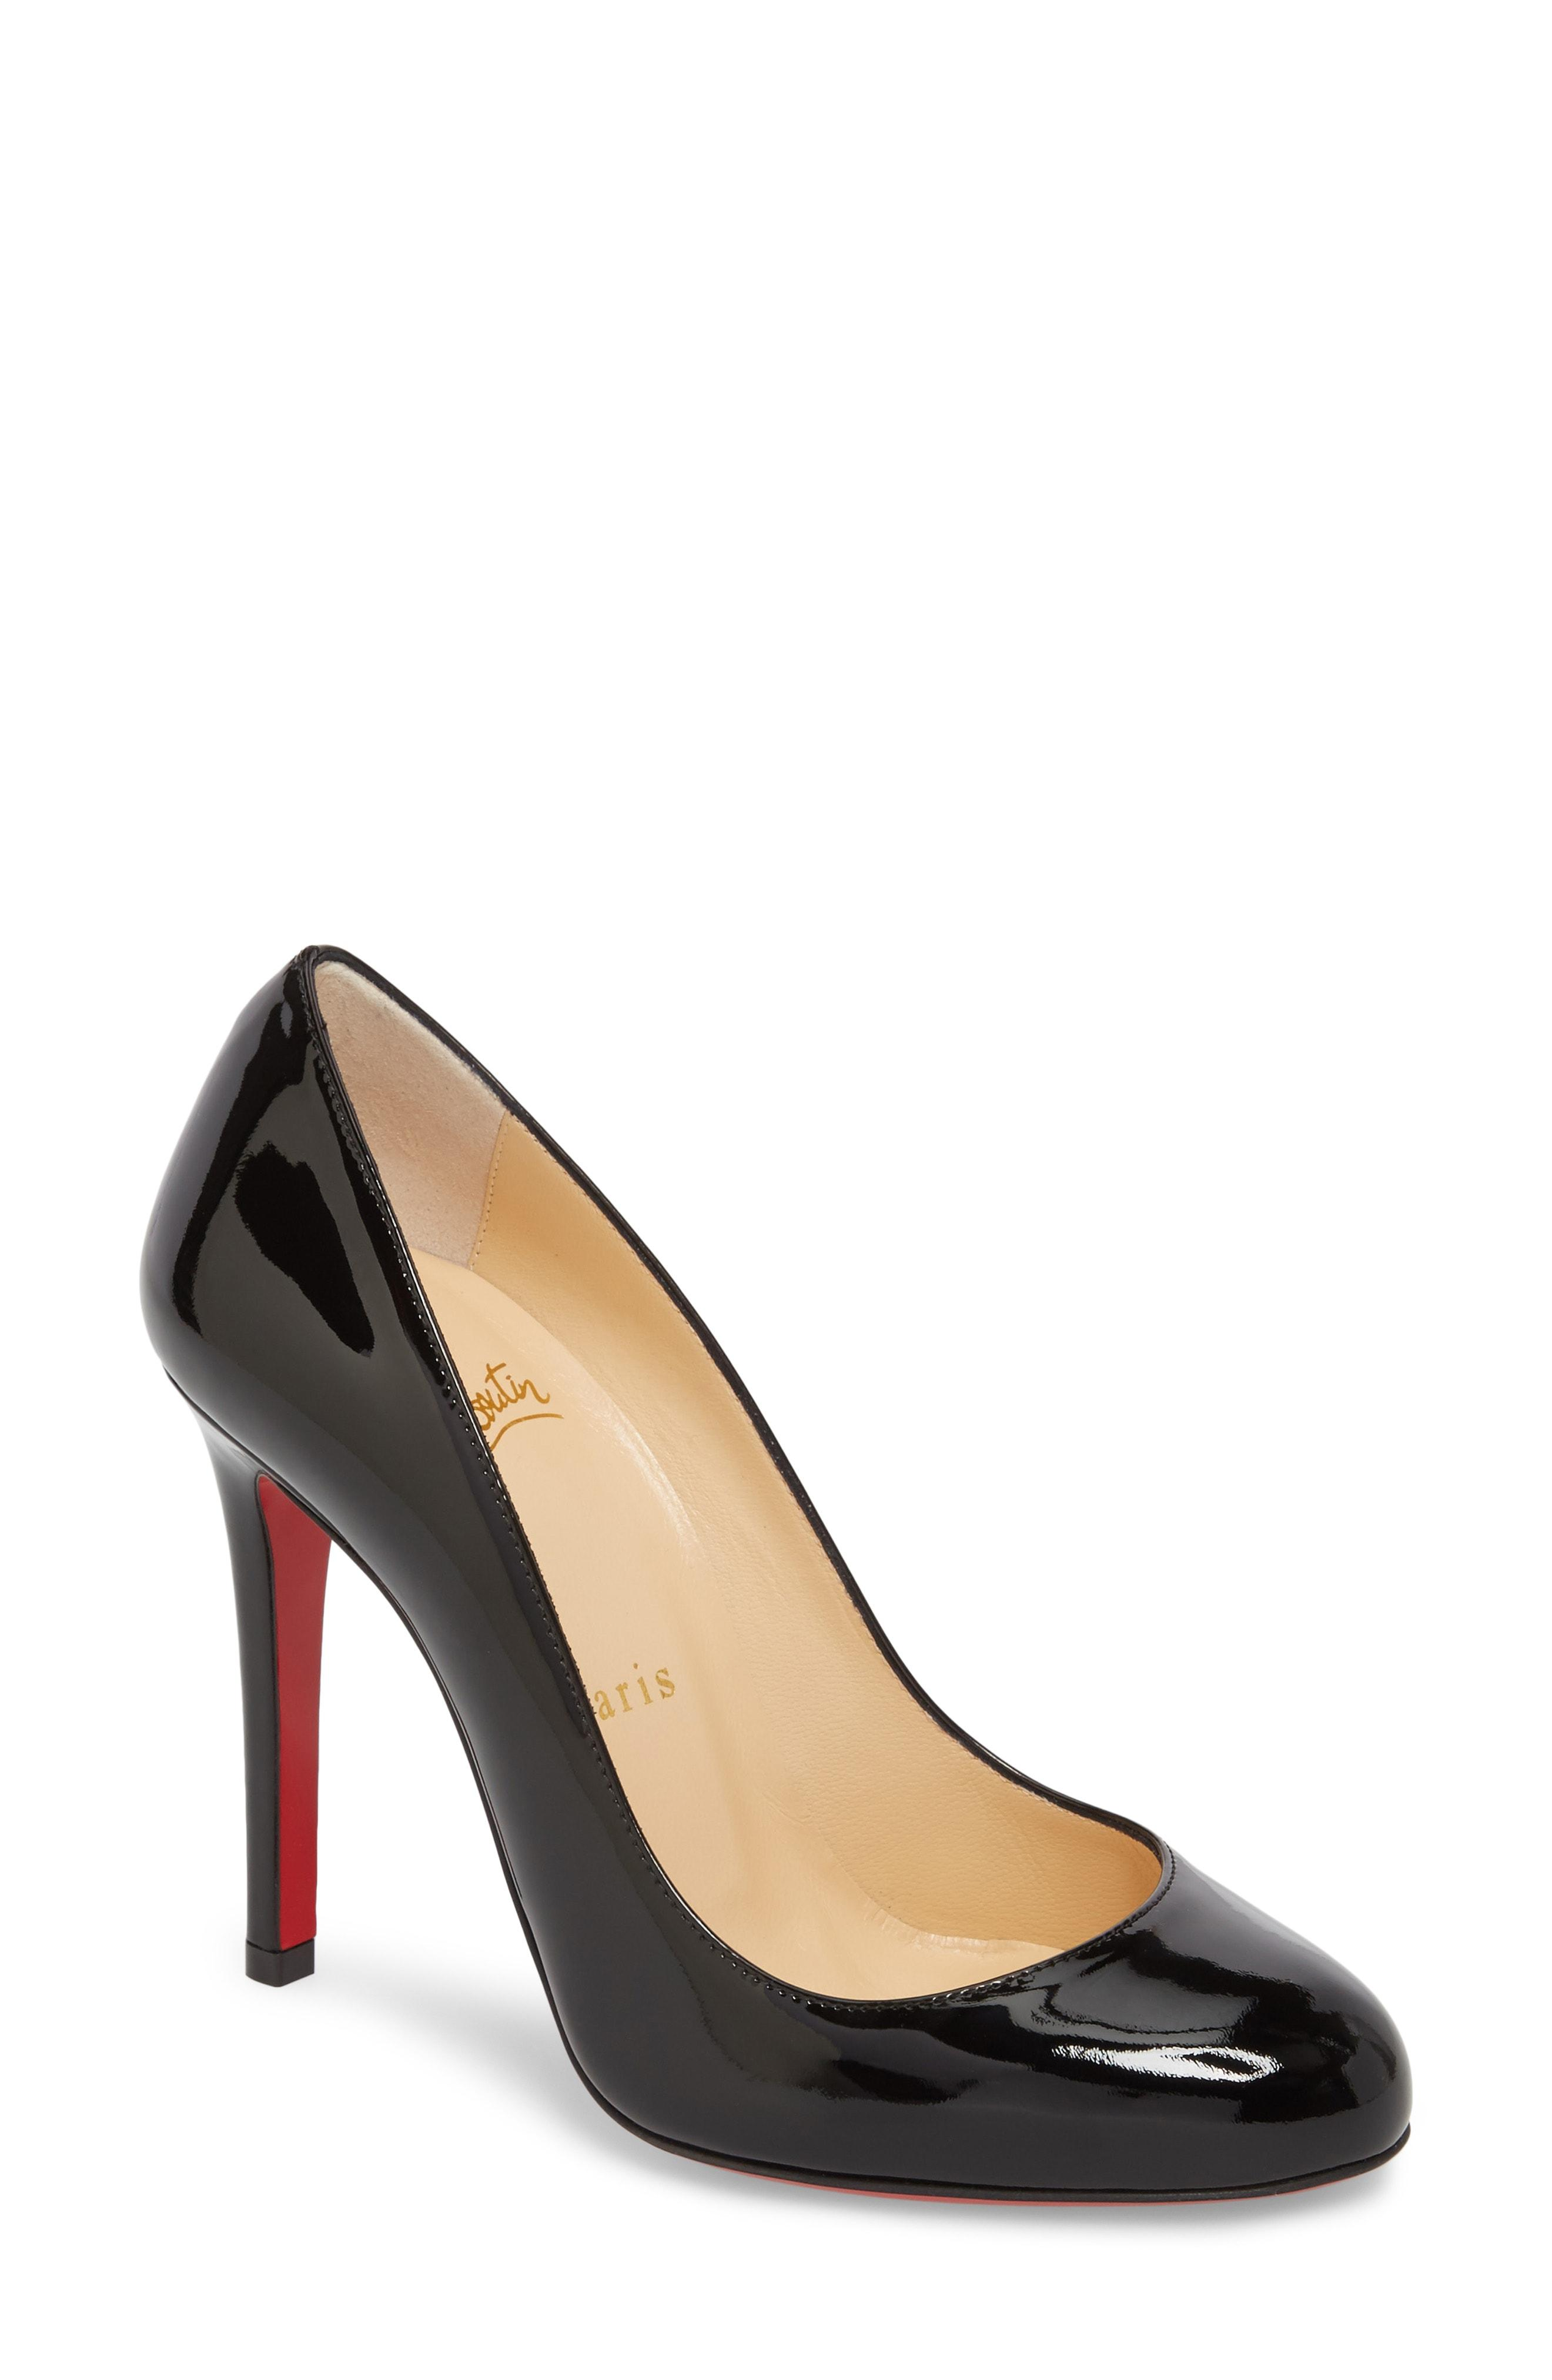 0162ec1613 Christian Louboutin Simple Patent 85Mm Red Sole Pumps In Black ...